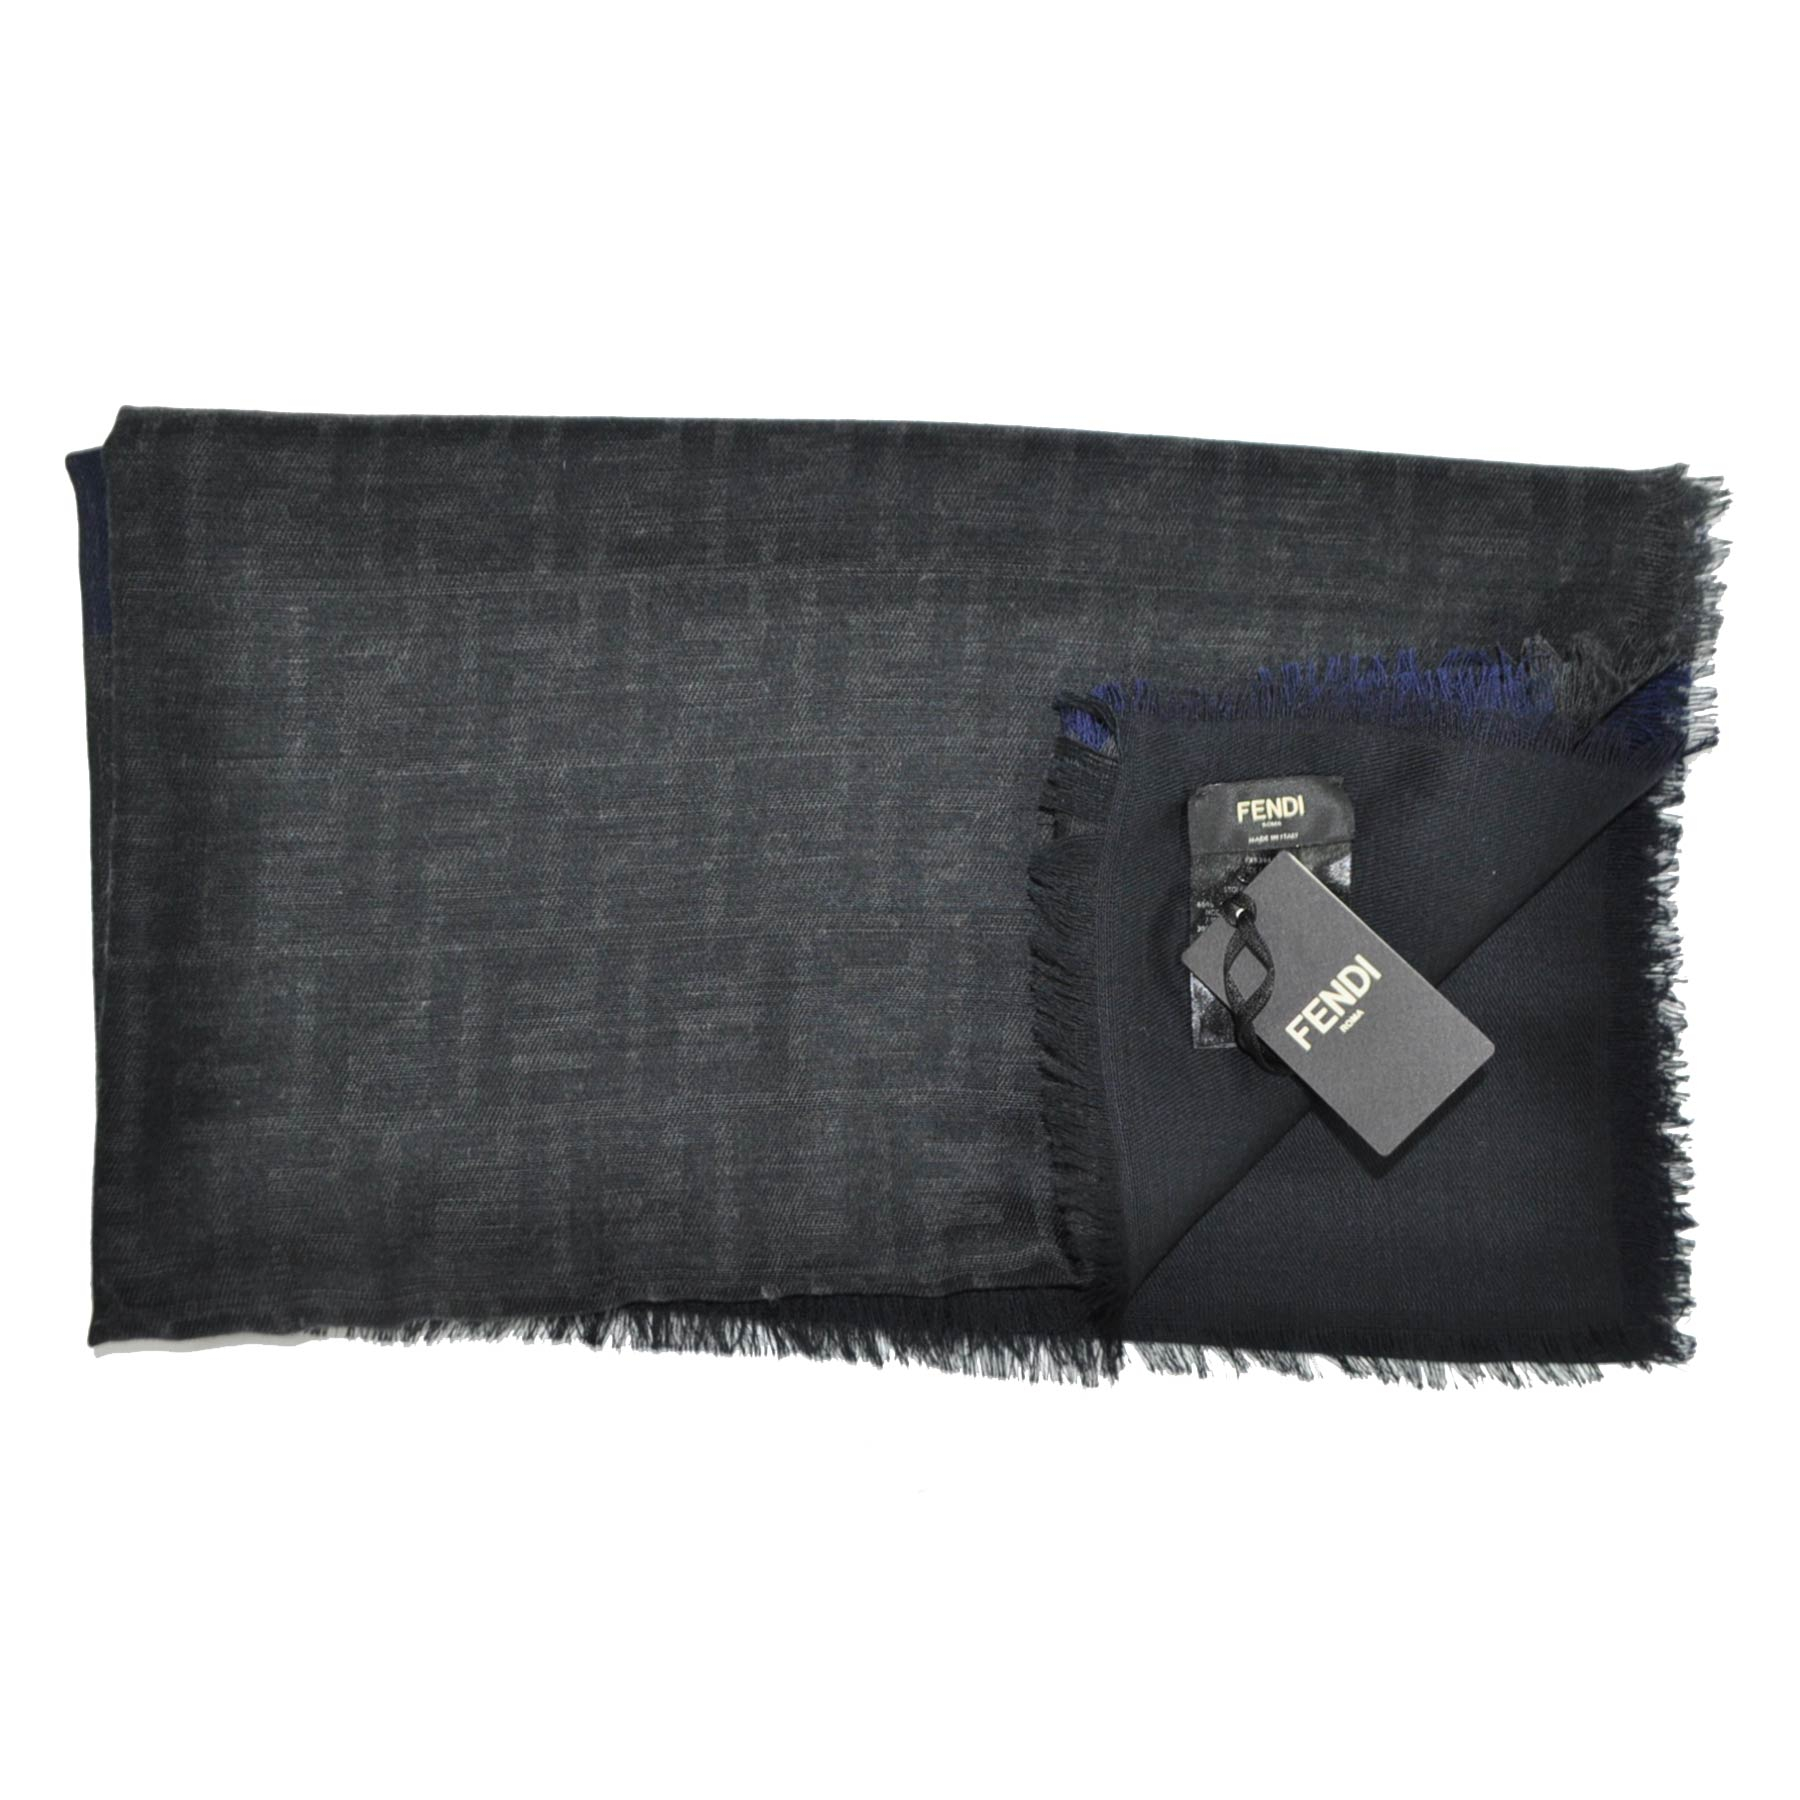 Fendi Scarf Charcoal Gray Midnight Blue Wool Blend